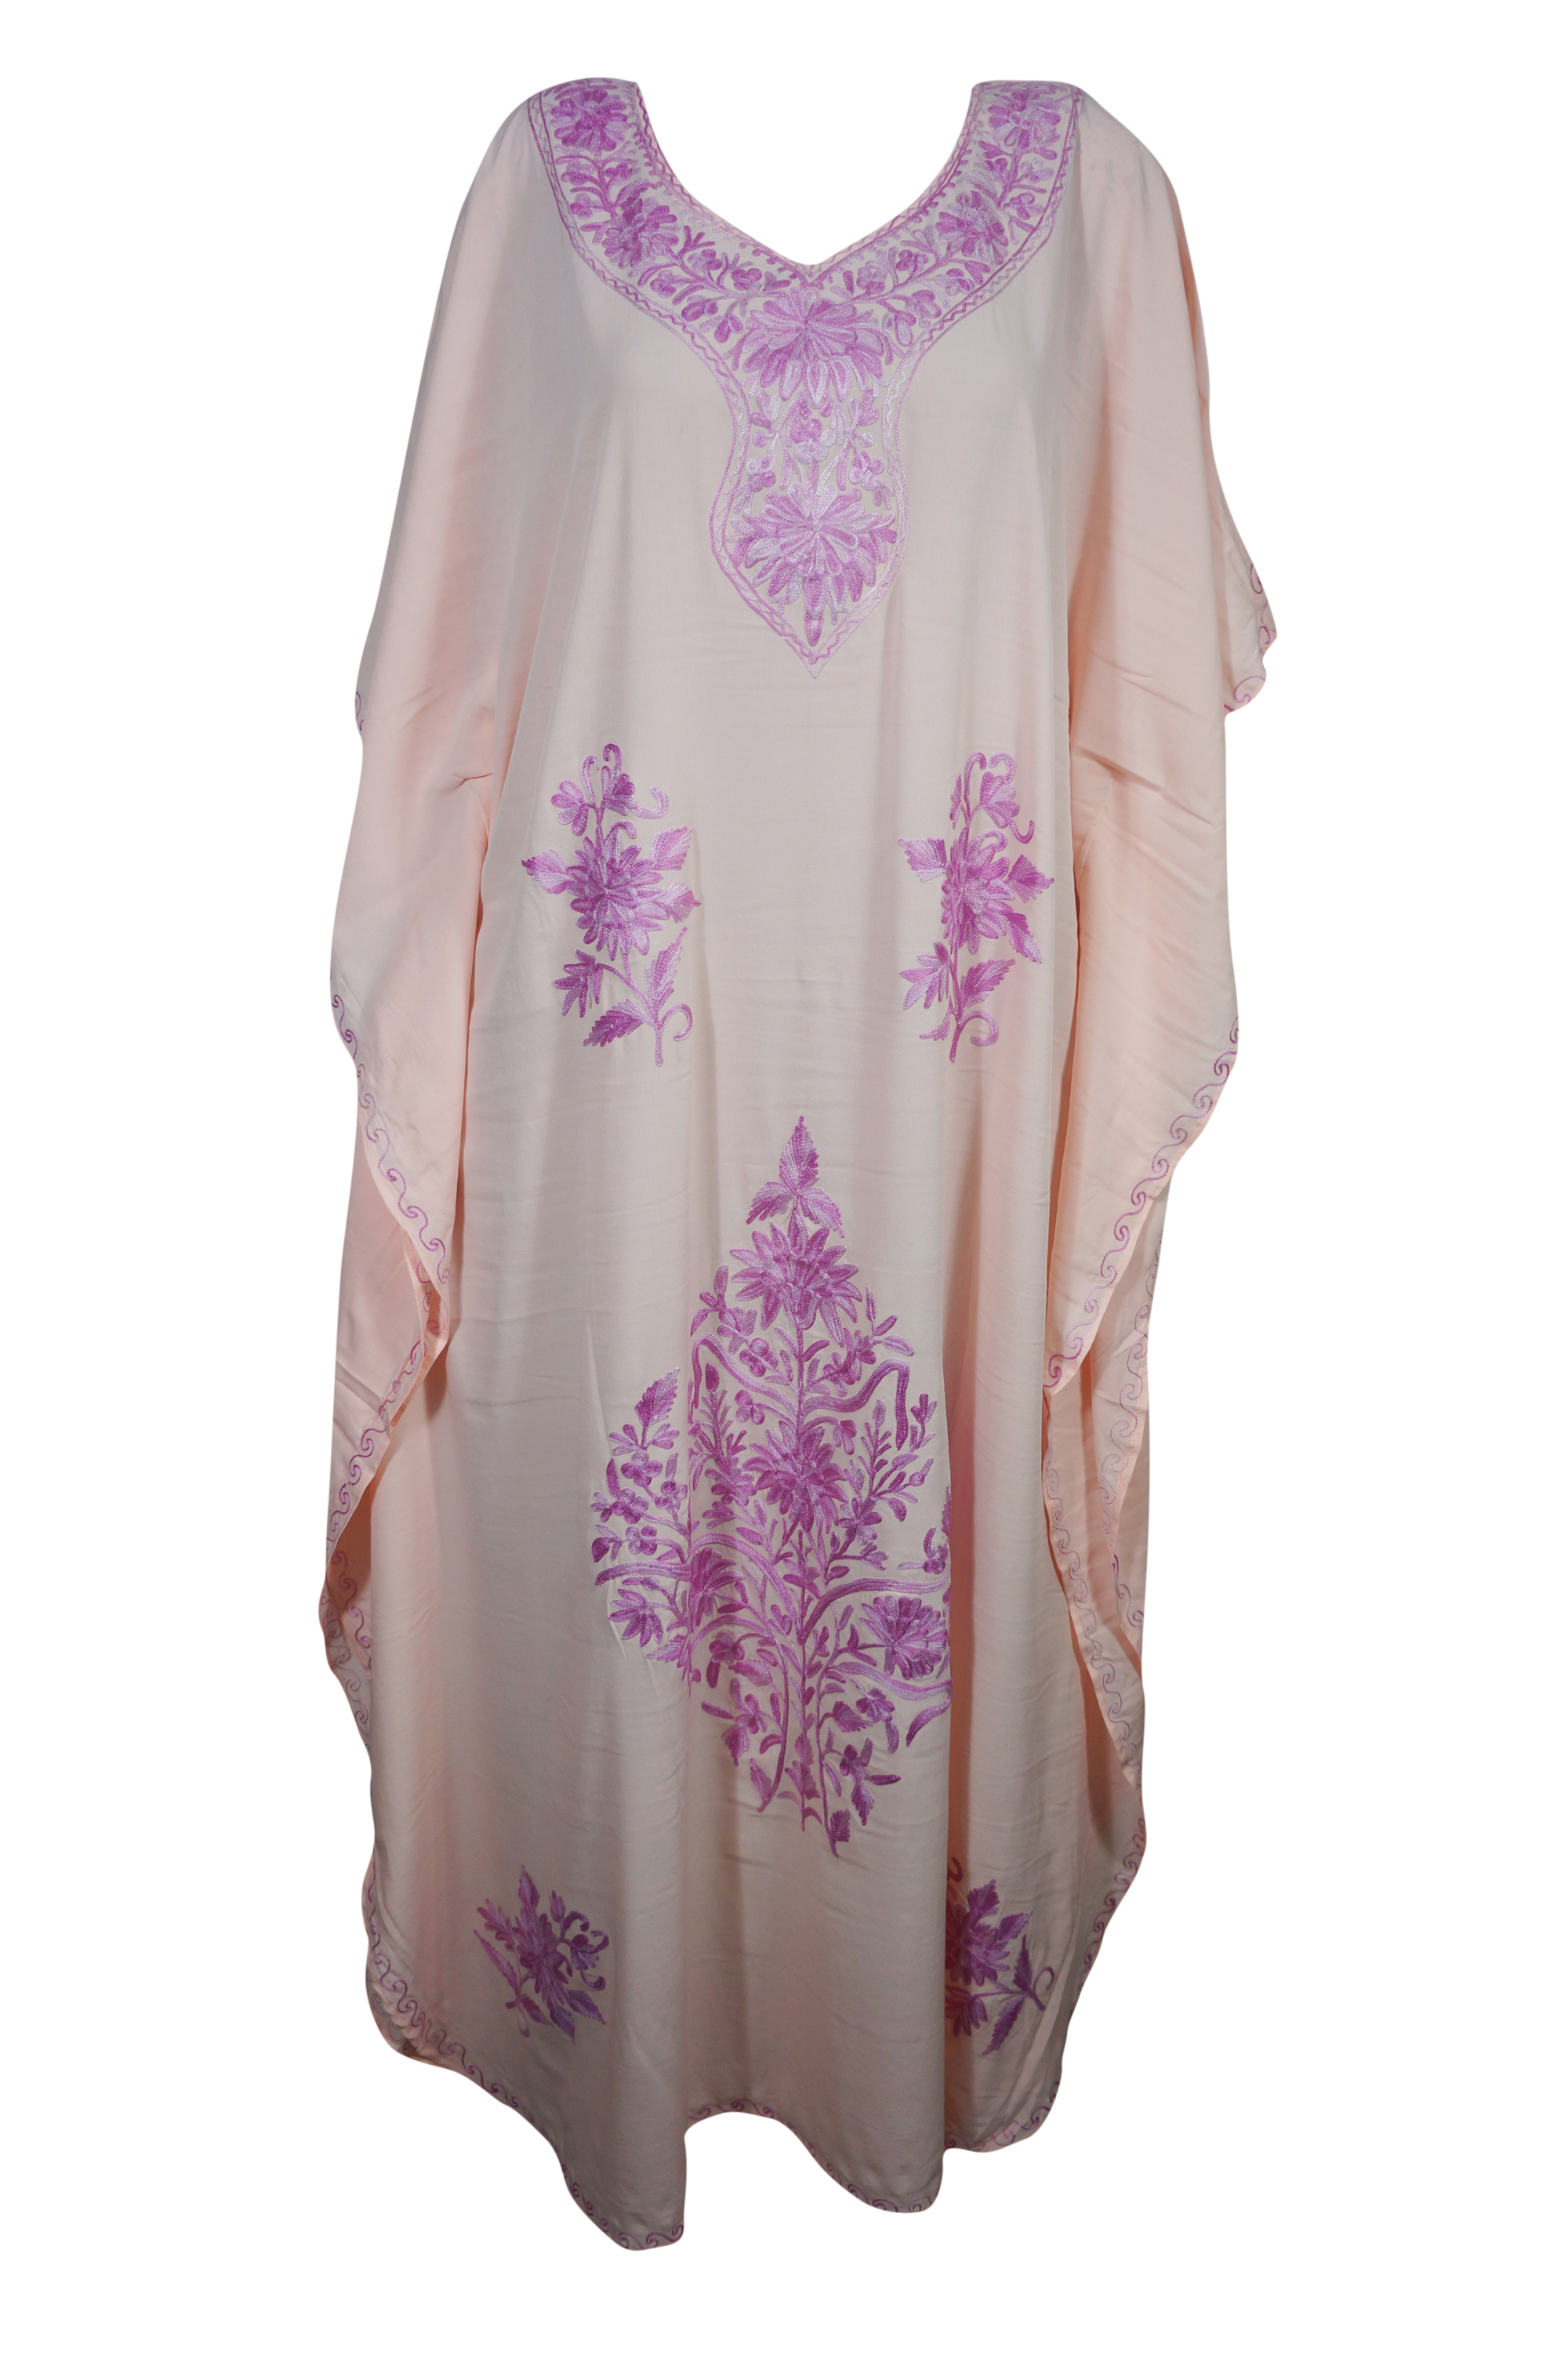 Mogul Bohemian Womens Maxi Caftan Dress Pink Floral Hand Embroidered Kimono Sleeves Resort Wear Summer Style Long Kaftan 3XL